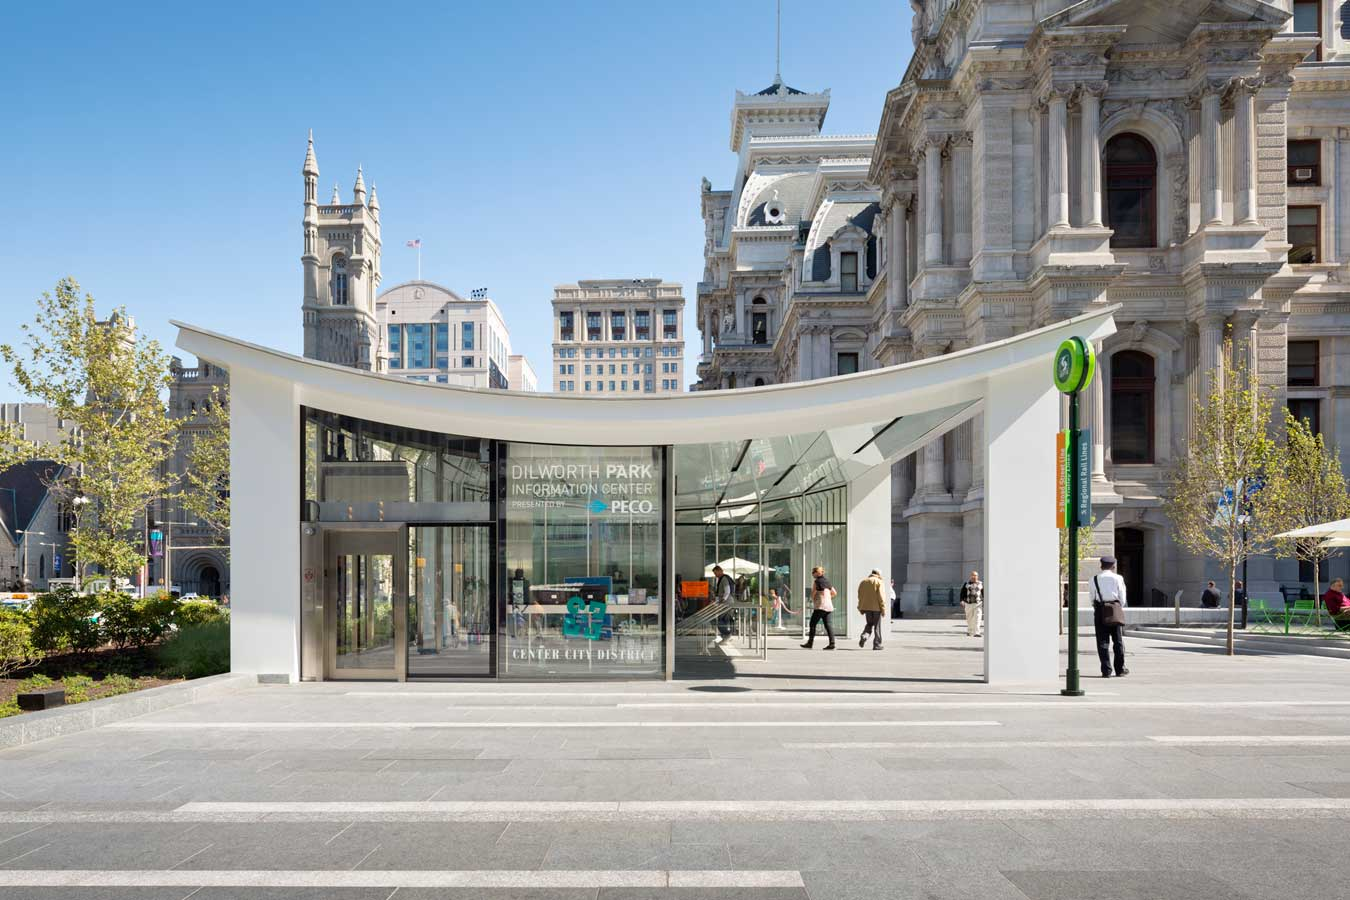 <p>The café, which is positioned for optimal sunlight and mile-long views down Benjamin Franklin Parkway, is another building of singular materiality—like City Hall (stone) and the transit pavilions (glass). In this case, Architecturally Exposed Structural Steel (AESS) was used for both structure and finish. <br><small>&copy; James Ewing Photography</small></p>